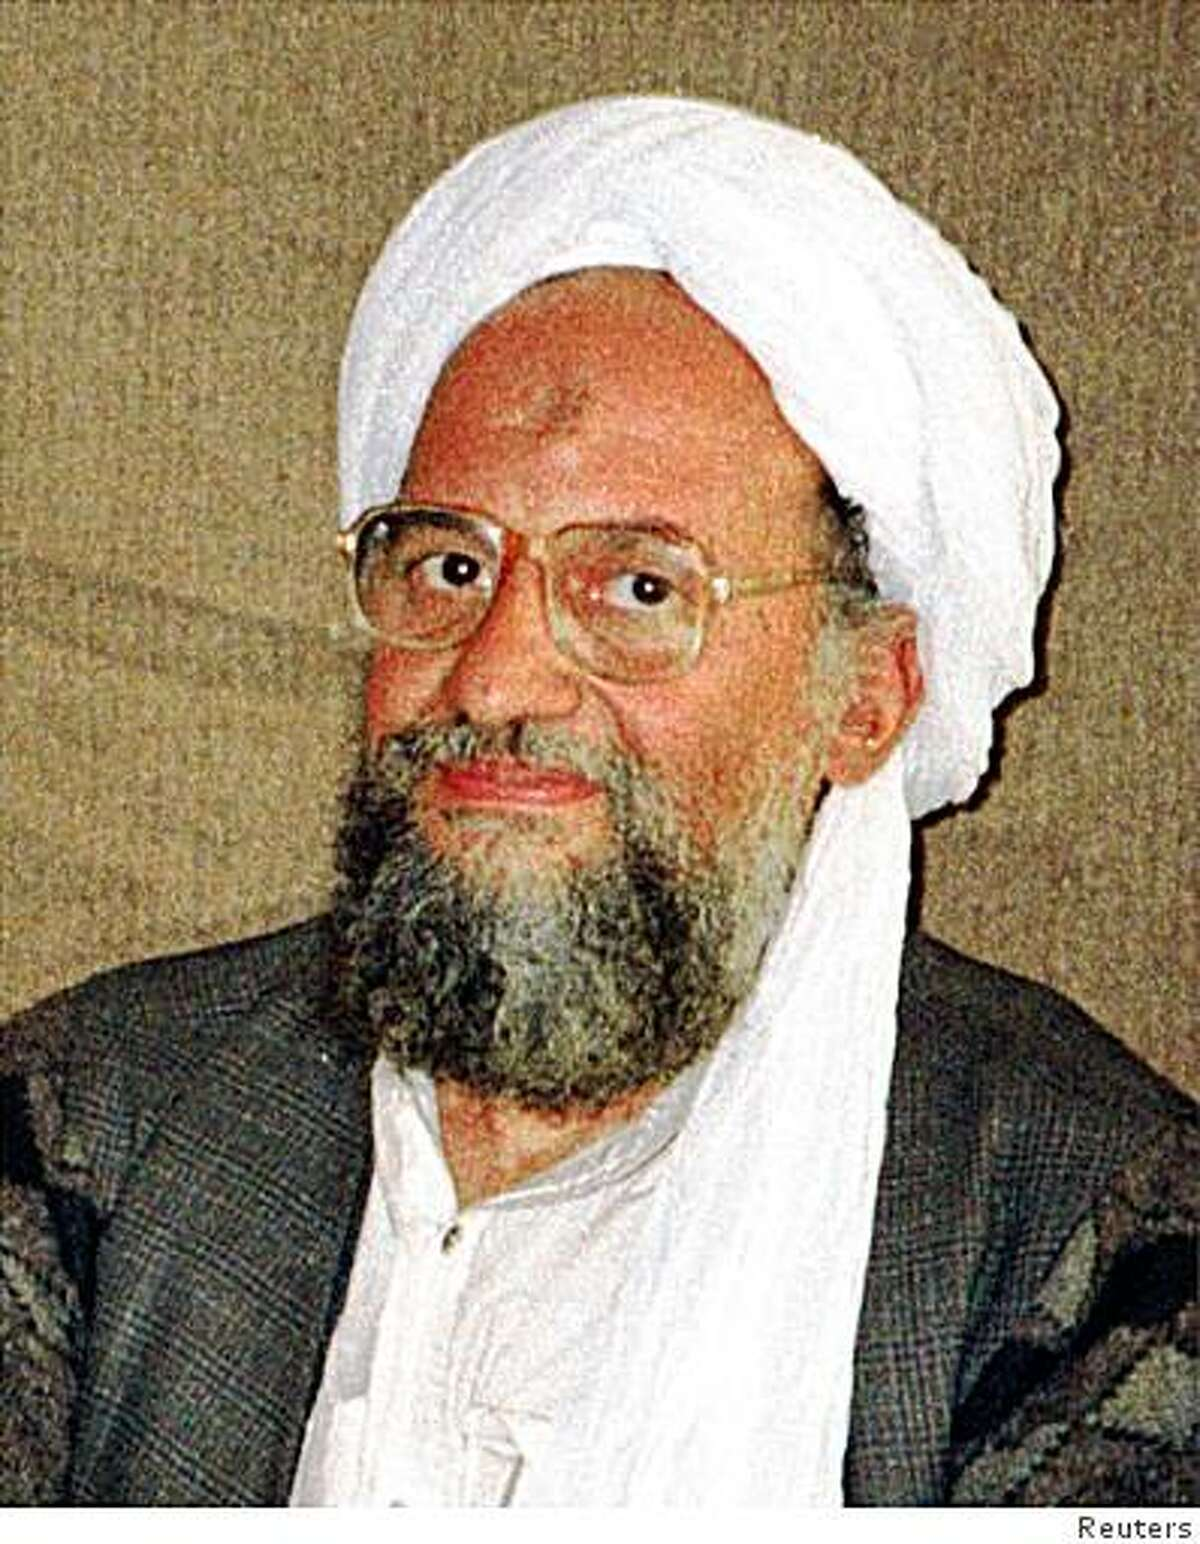 Al Qaeda's top strategist and second-in-command Ayman al-Zawahri is shown in this undated file photo. A U.S. airstrike in Pakistan targeted al Qaeda's No. 2 al-Zawahiri but it was unclear if he had been killed, CNN quoted U.S. sources as saying on January 13, 2006. Al Qaeda leader Osama Bin Laden and the Egyptian-born Zawahiri have eluded capture since U.S.-led forces toppled Afghanistan's Taliban government in 2001 after the September 11 attacks. PAKISTAN OUT REUTERS/Hamid Mir/Editor/Ausaf Newspaper for Daily Dawn/Files